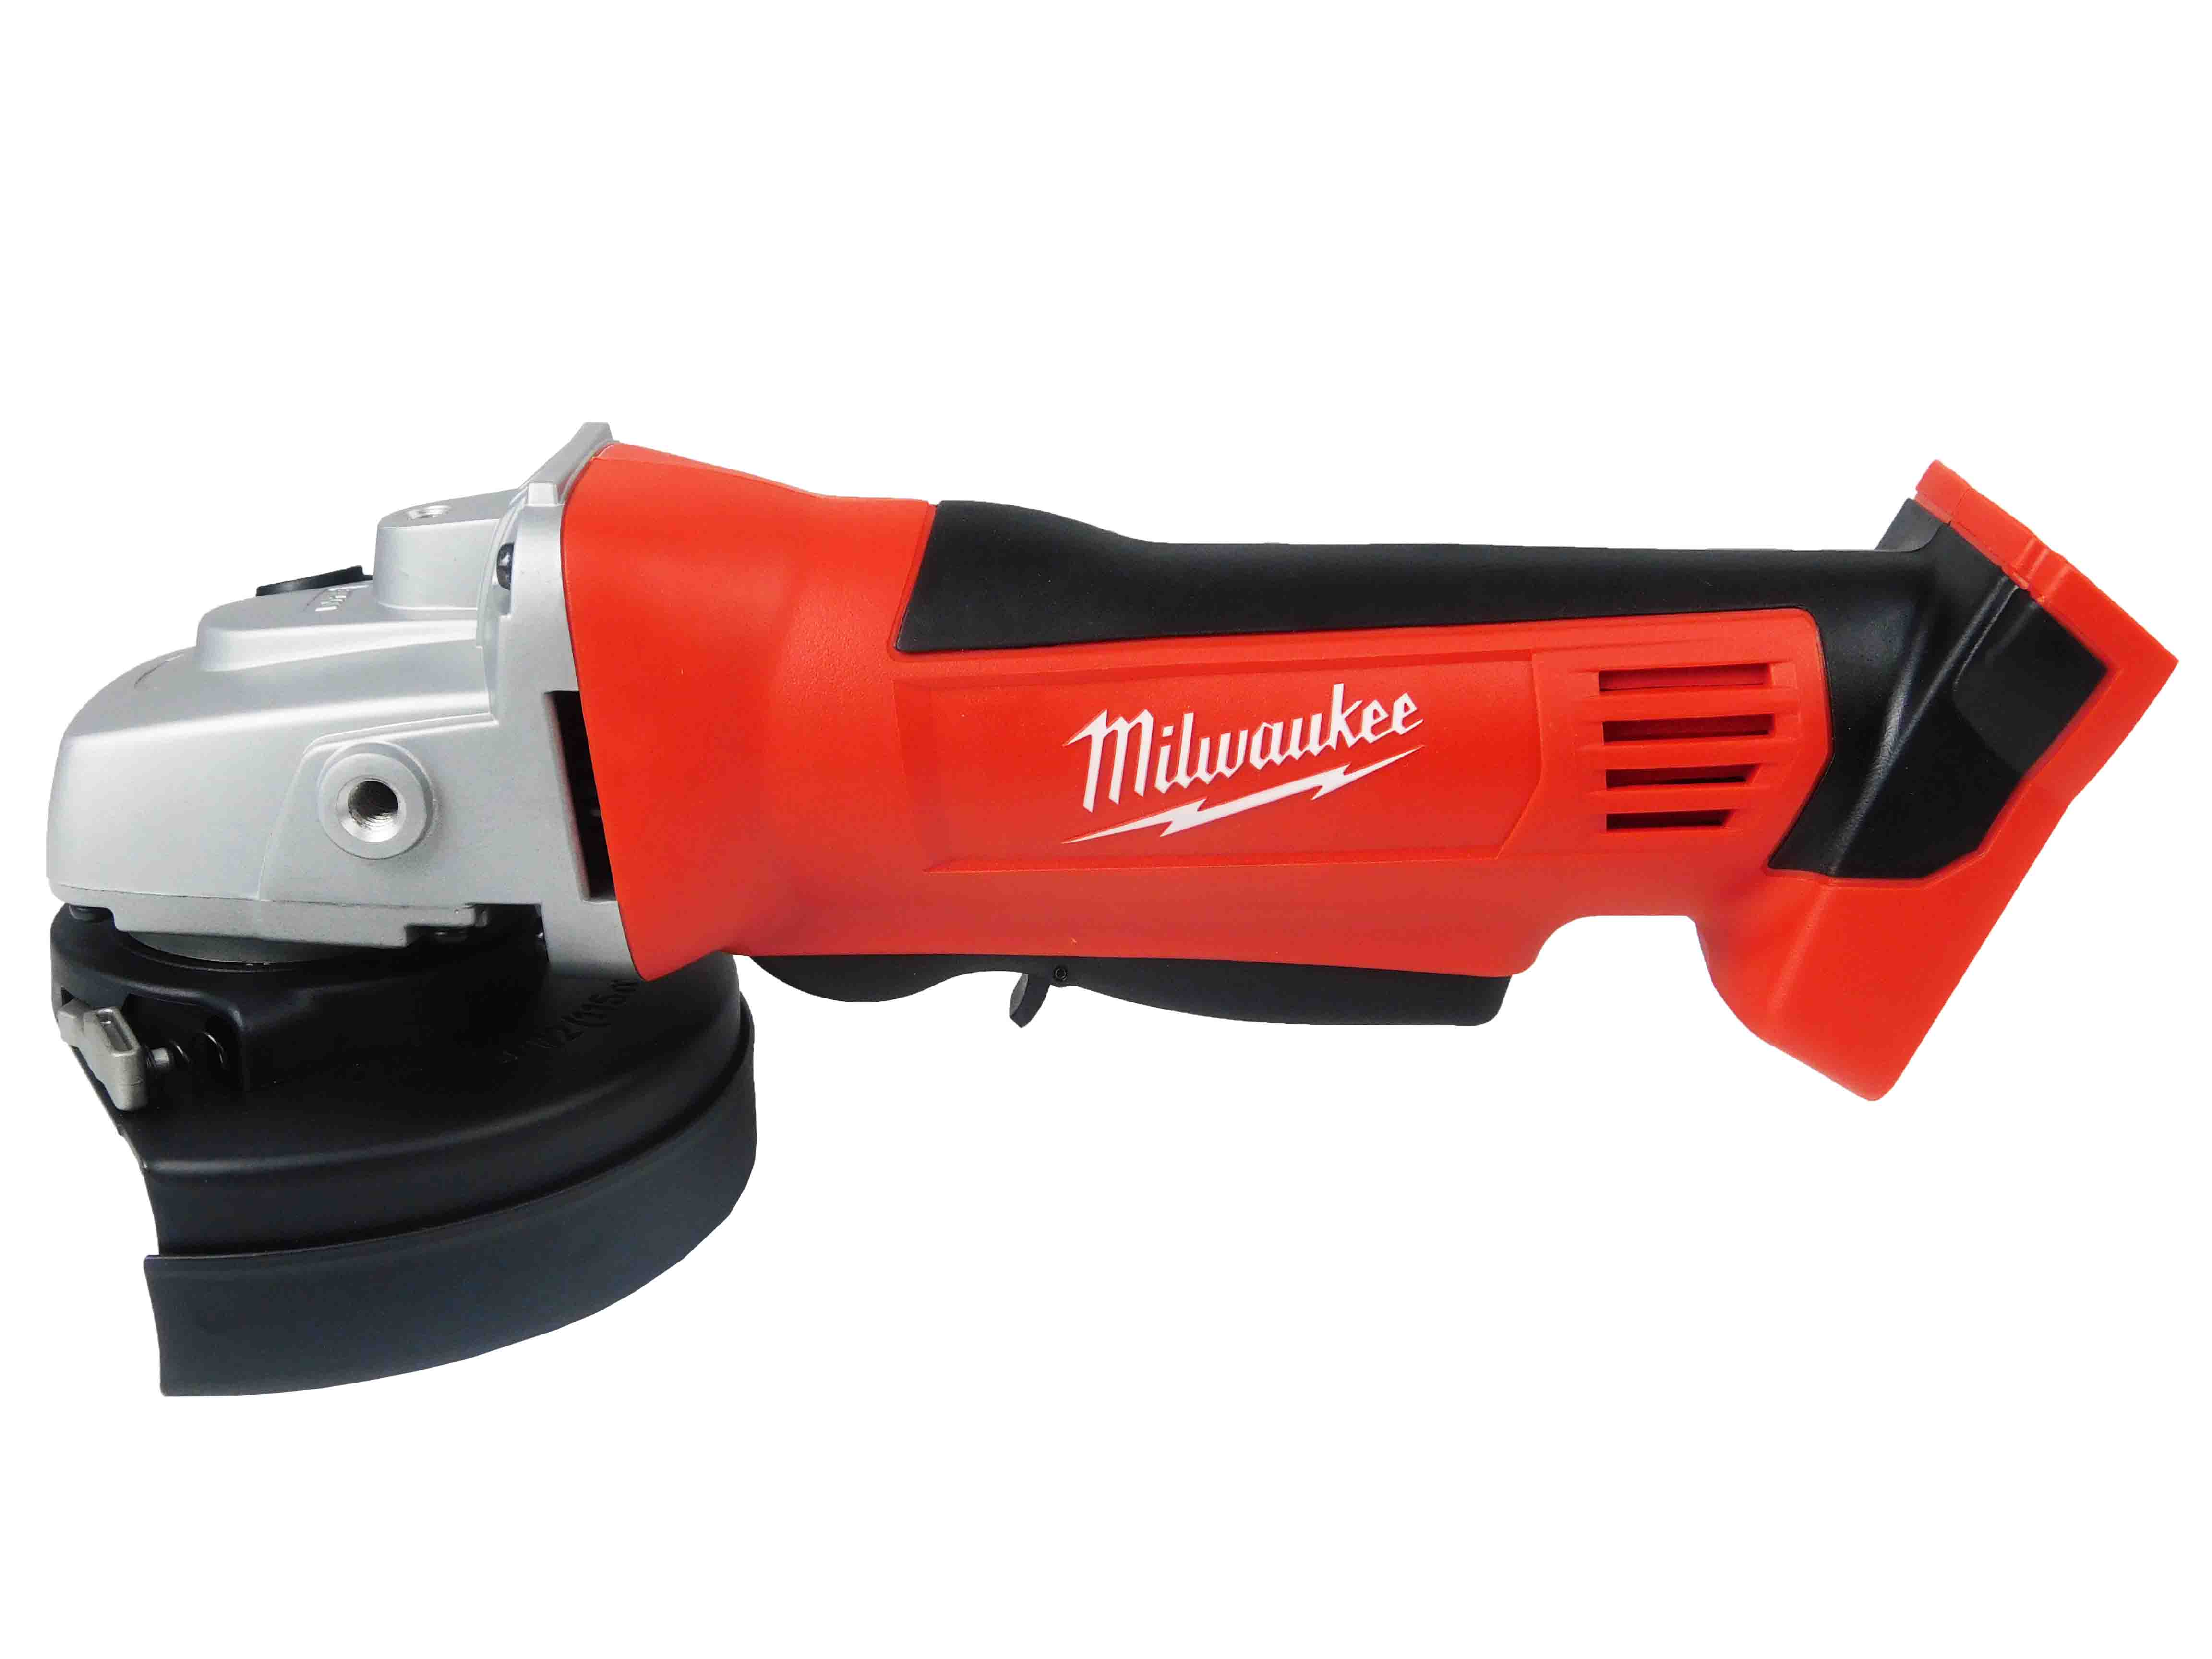 Milwaukee-M18-2680-20-18V-4-1-2-Cordless-Cutoff-Grinder-Tool-Only-image-1